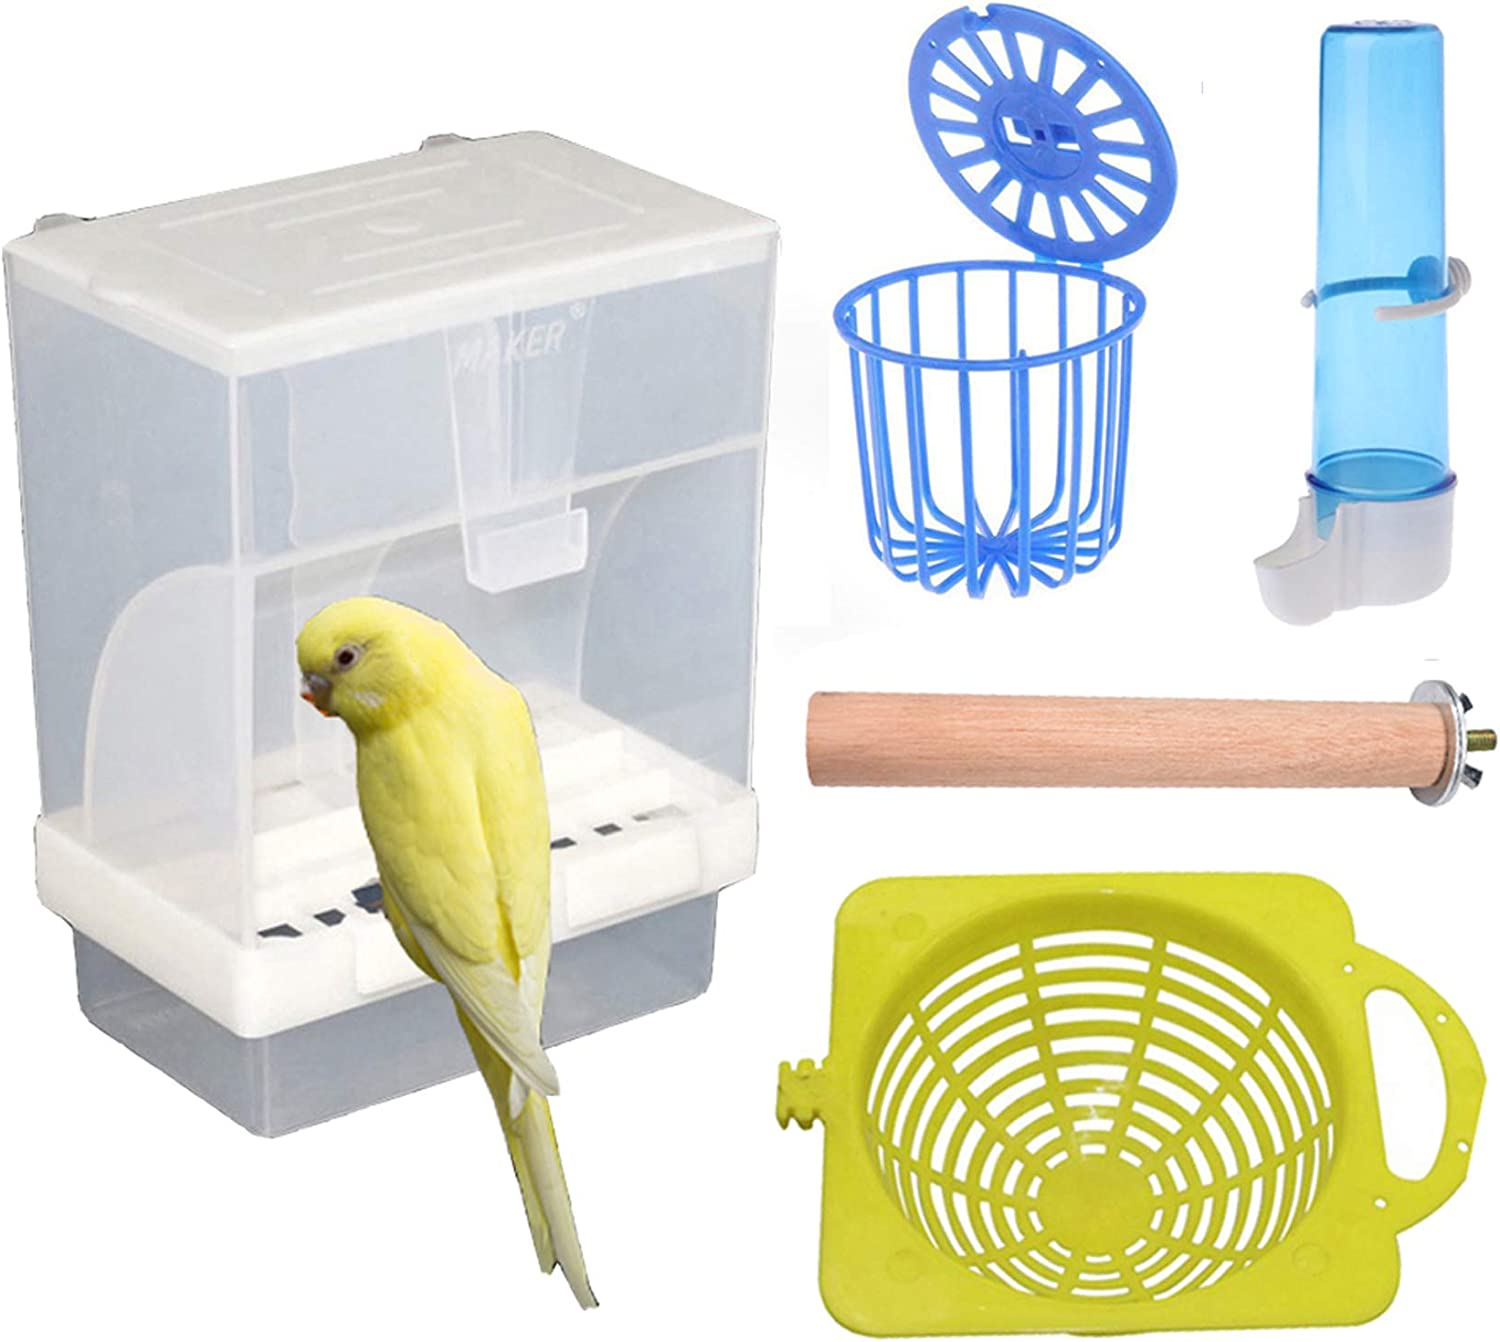 Hamiledyi Parrot Feeder Cage Accessories Supplies Automatic Bird Feeder Fruit Vegetable Holder Cage Hanging Basket Water Dispenser Parakeet Cage Perch for Small Cockatiels Lovebirds